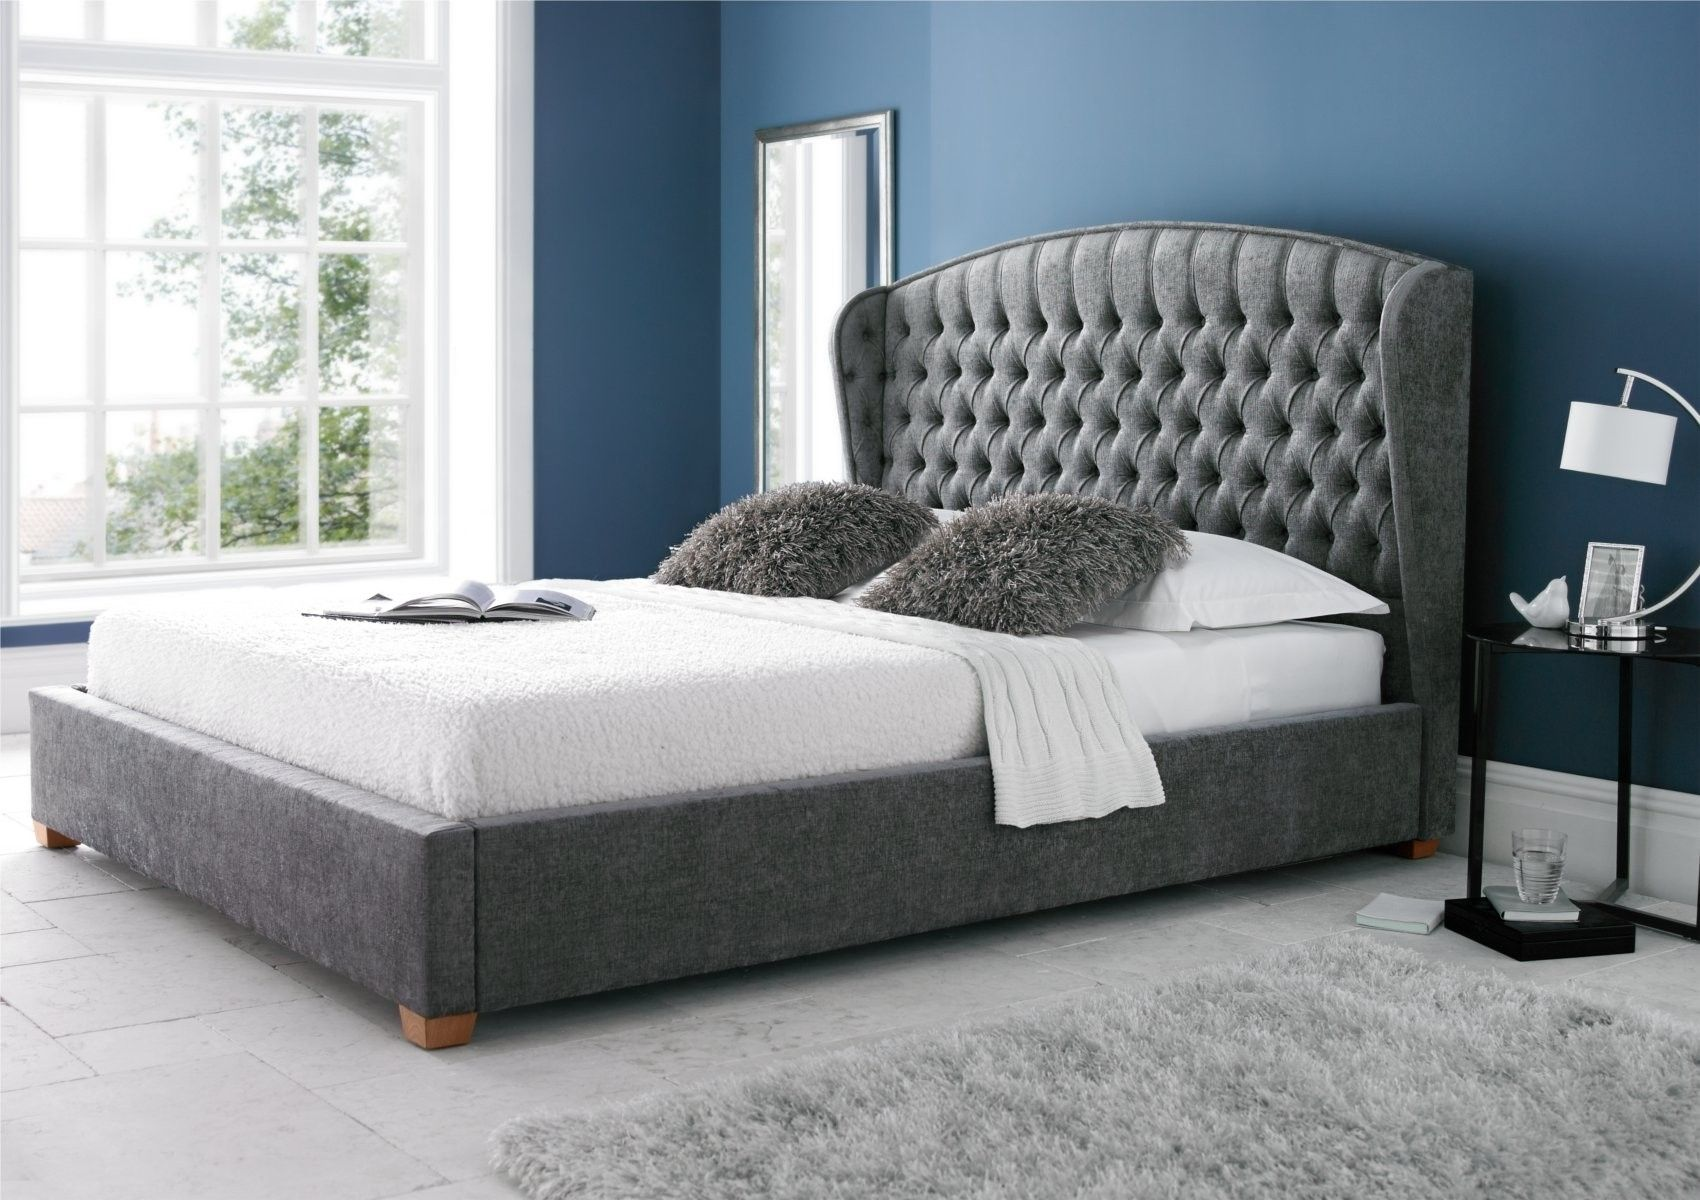 The Best King Size Bed Frame in 3  Super king size bed, Best